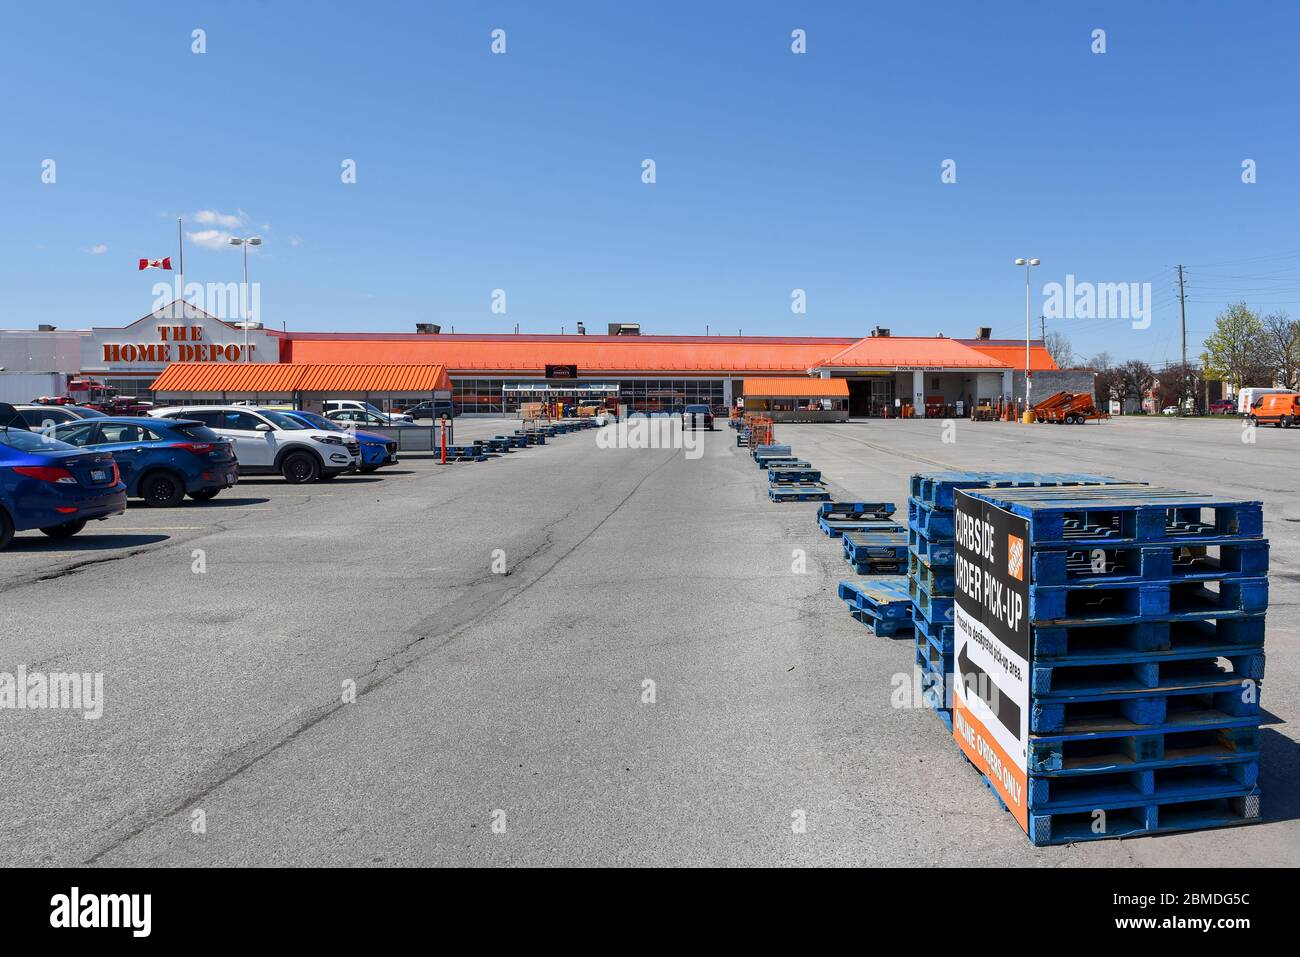 Repair Depot High Resolution Stock Photography And Images Alamy